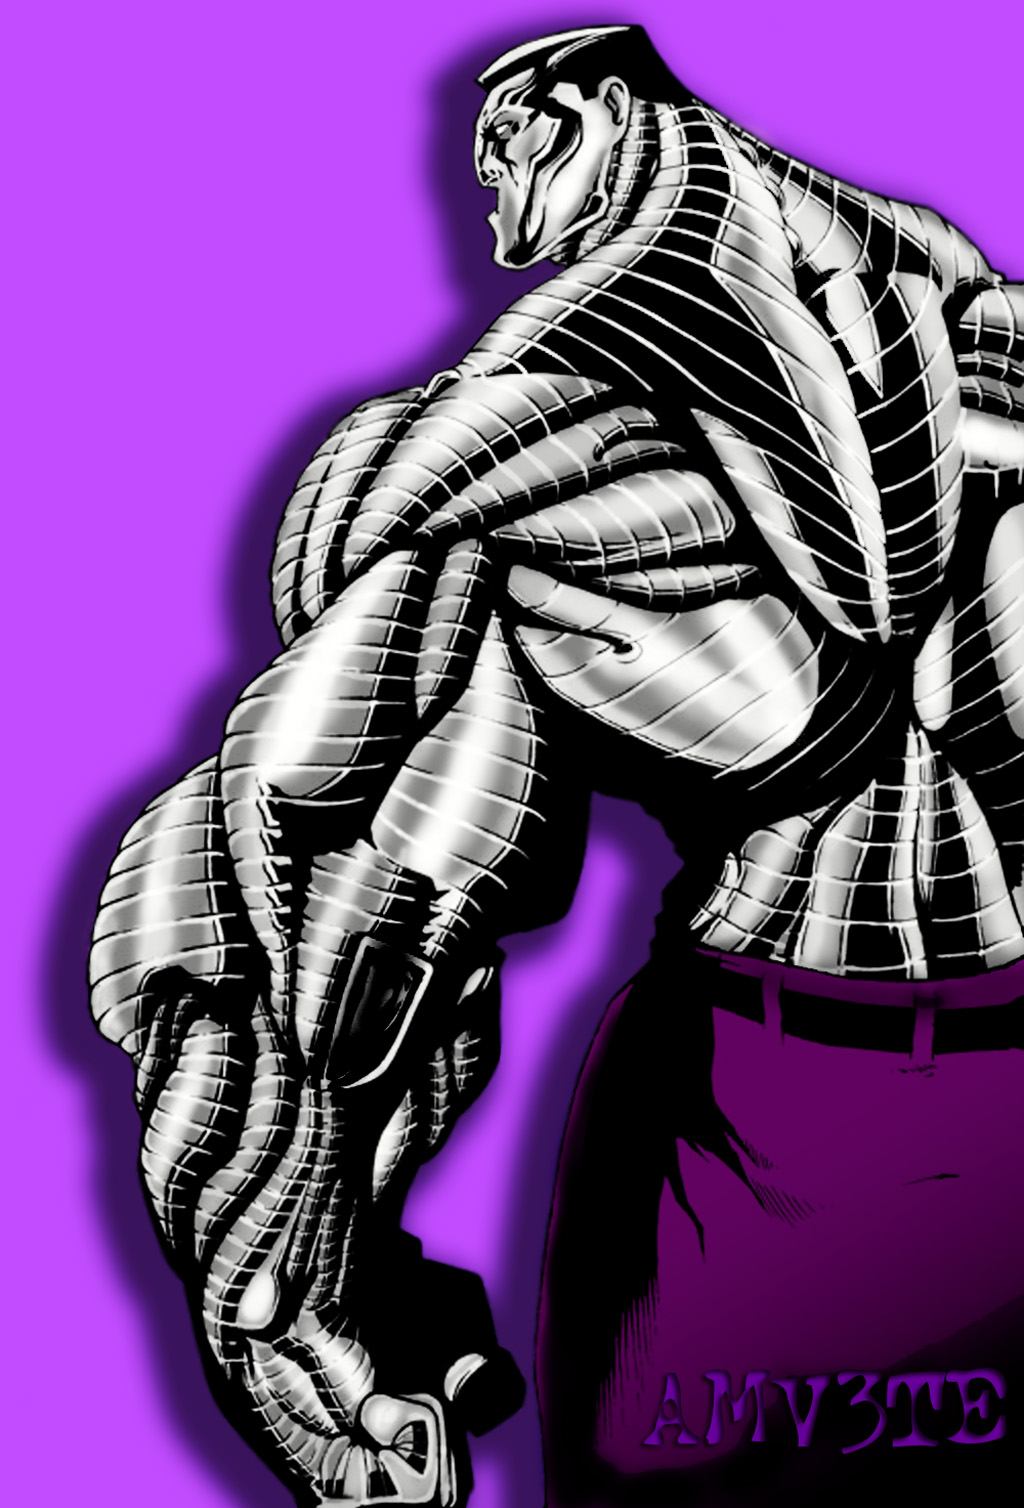 COLOSSUS - Unknown artist - COLORS by AMV3TE